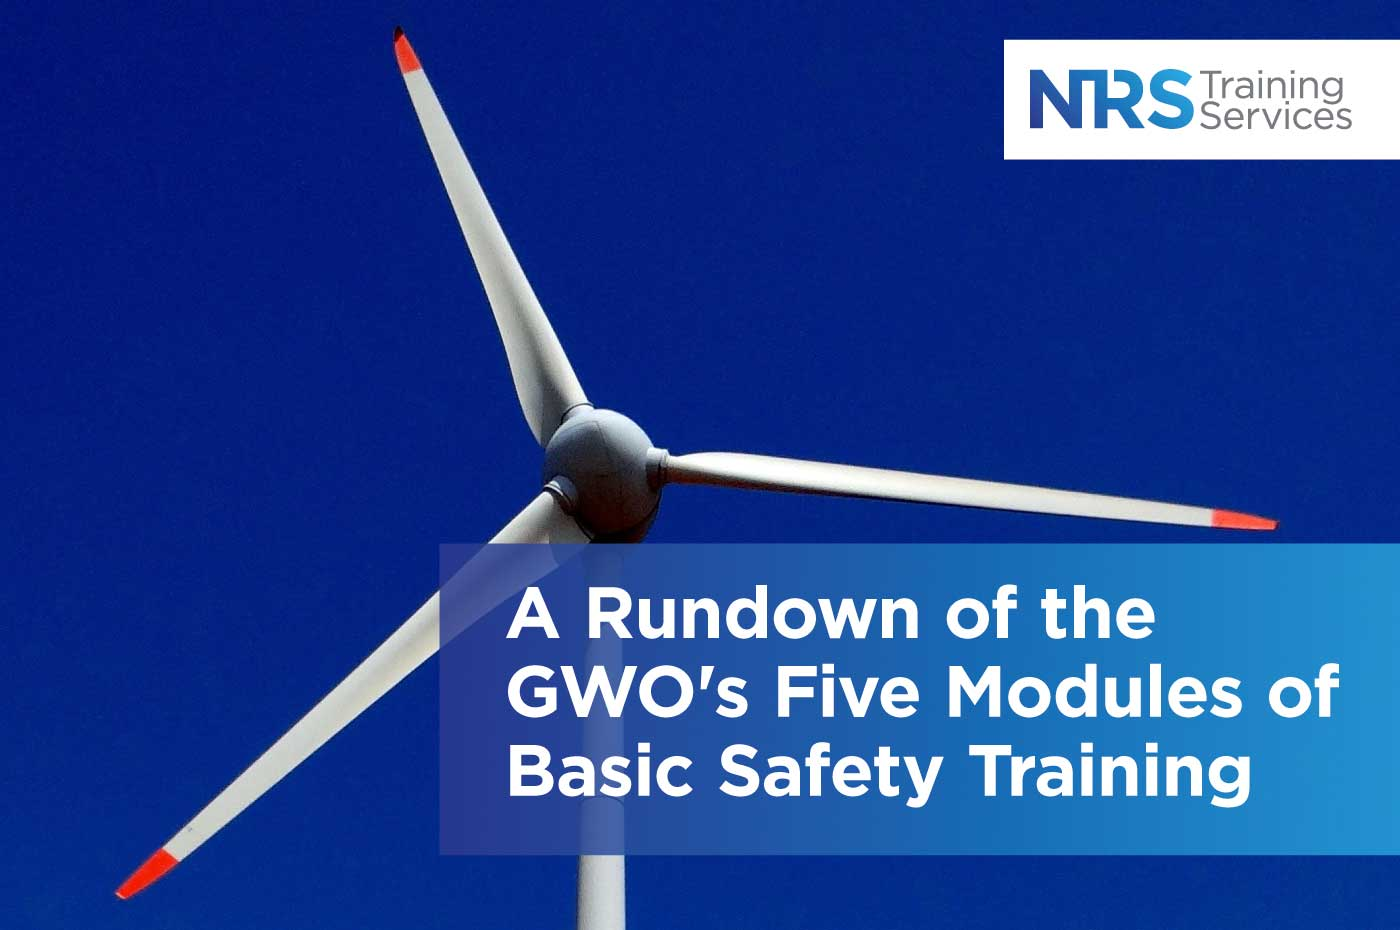 A Rundown of the GWO's Five Modules of Basic Safety Training